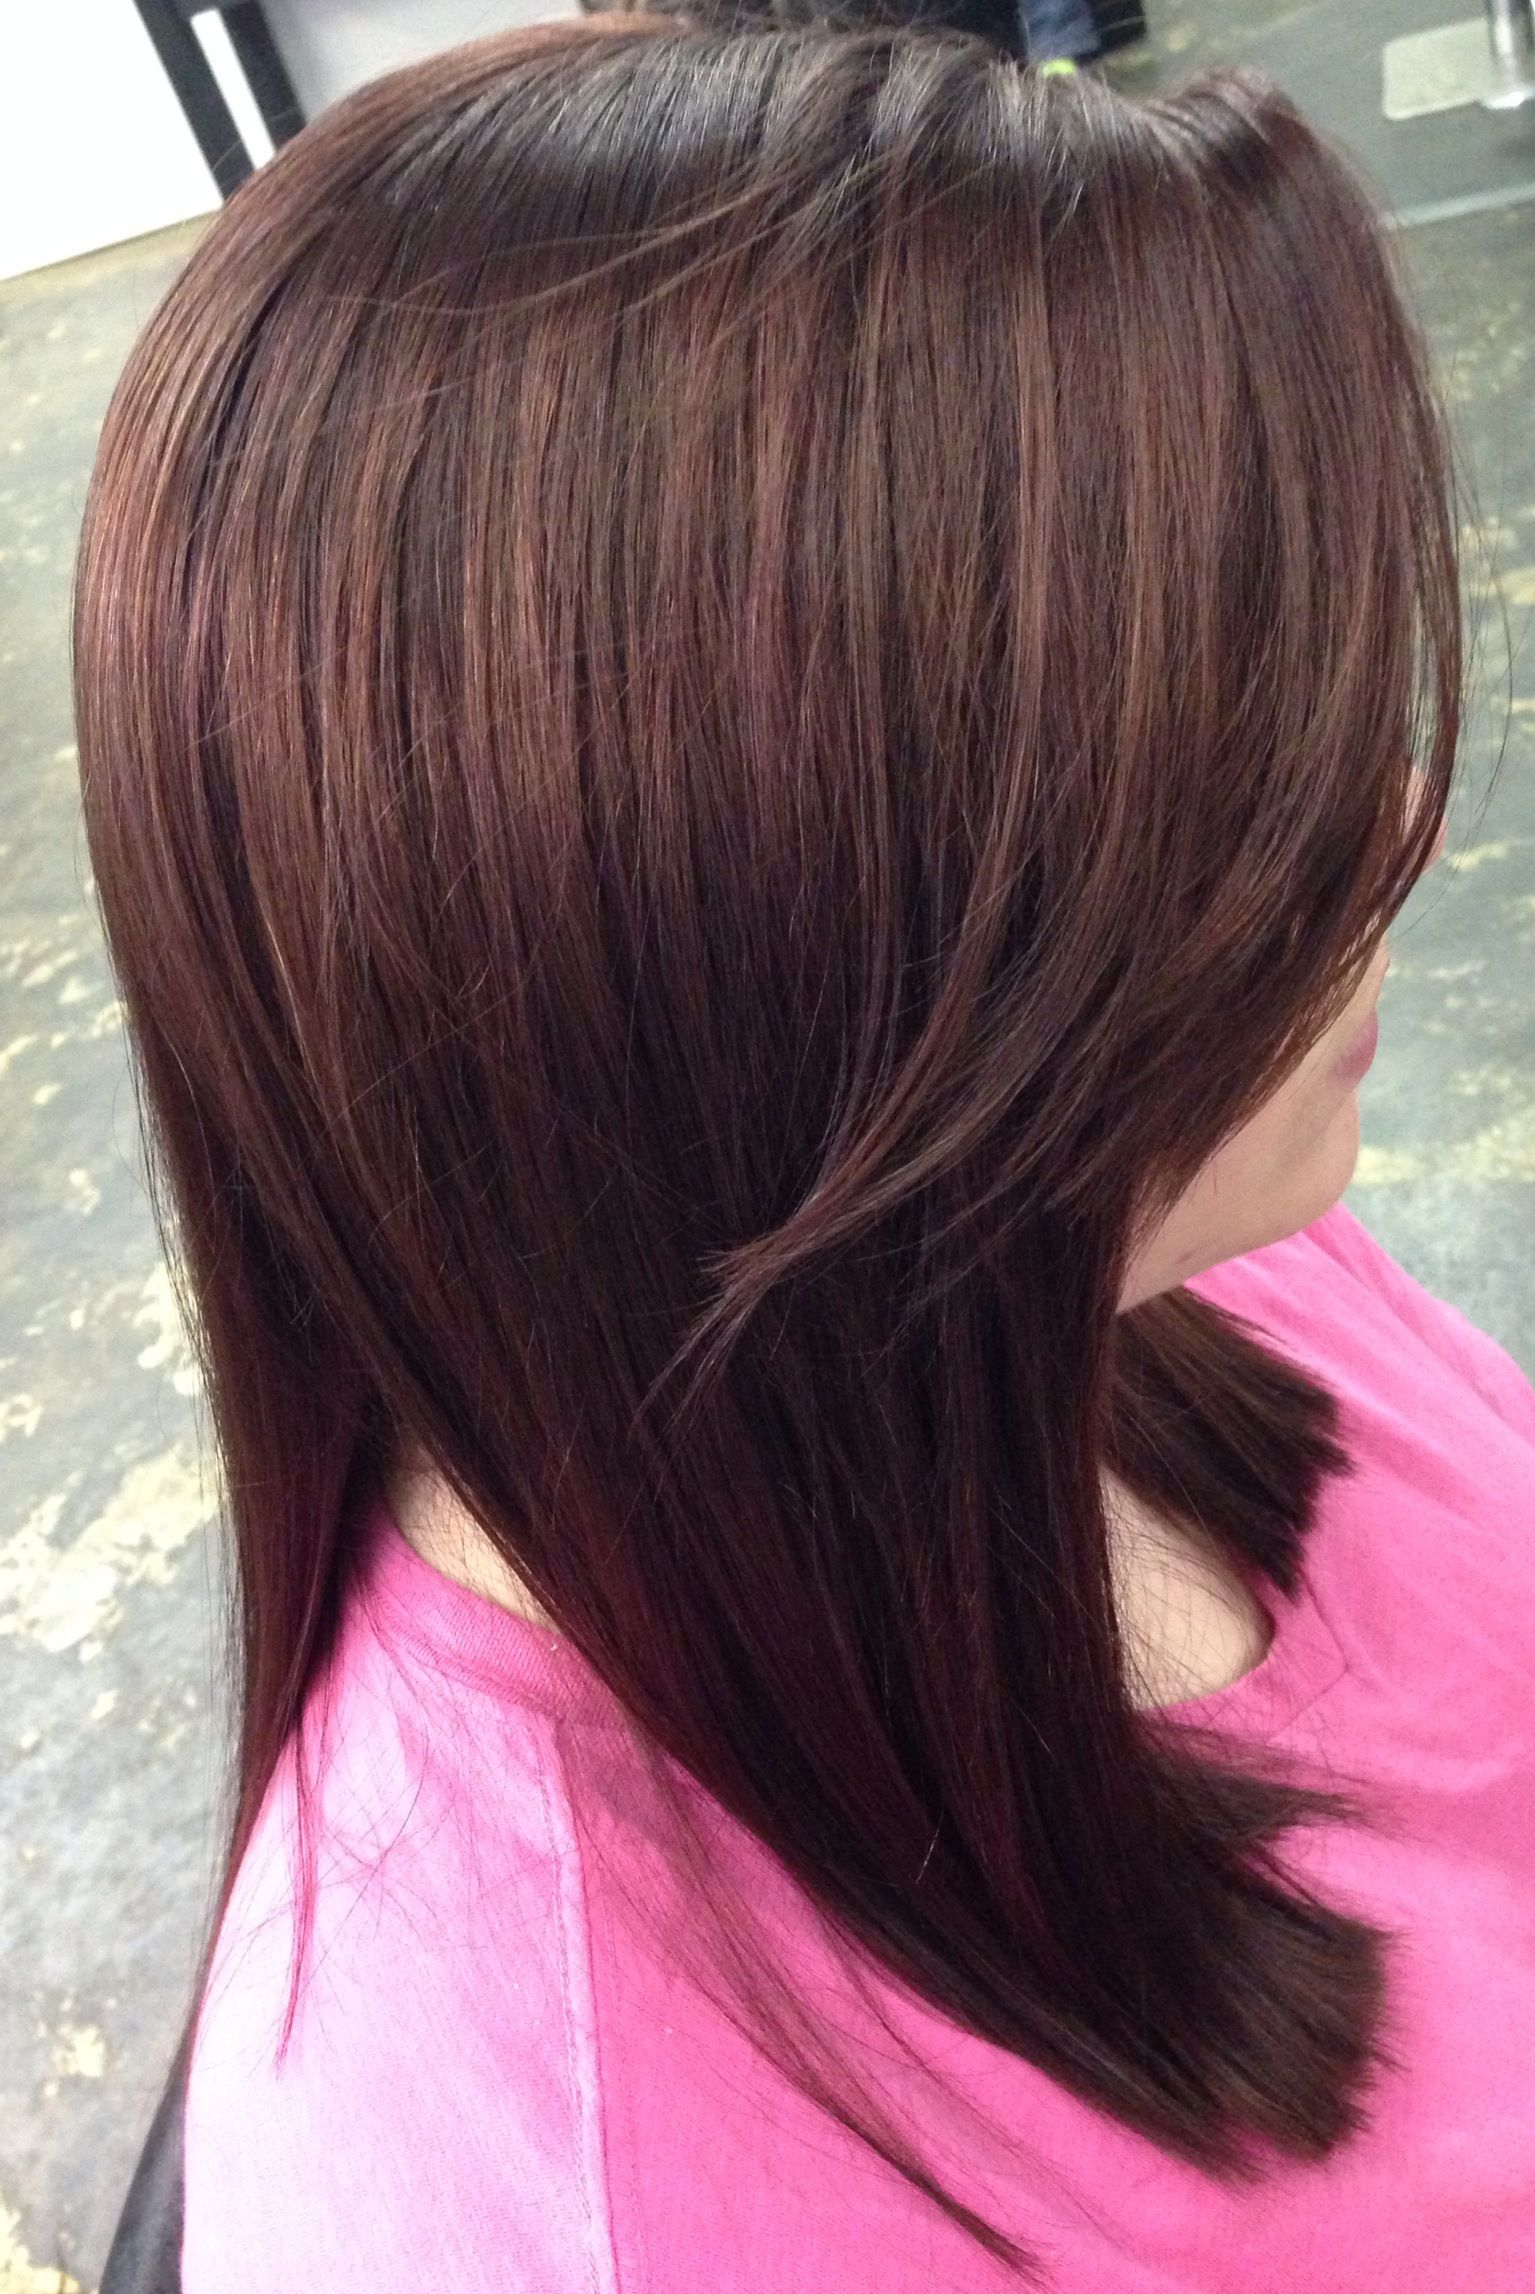 Rich Cherry Cola Color | Hair & Beauty | Pinterest